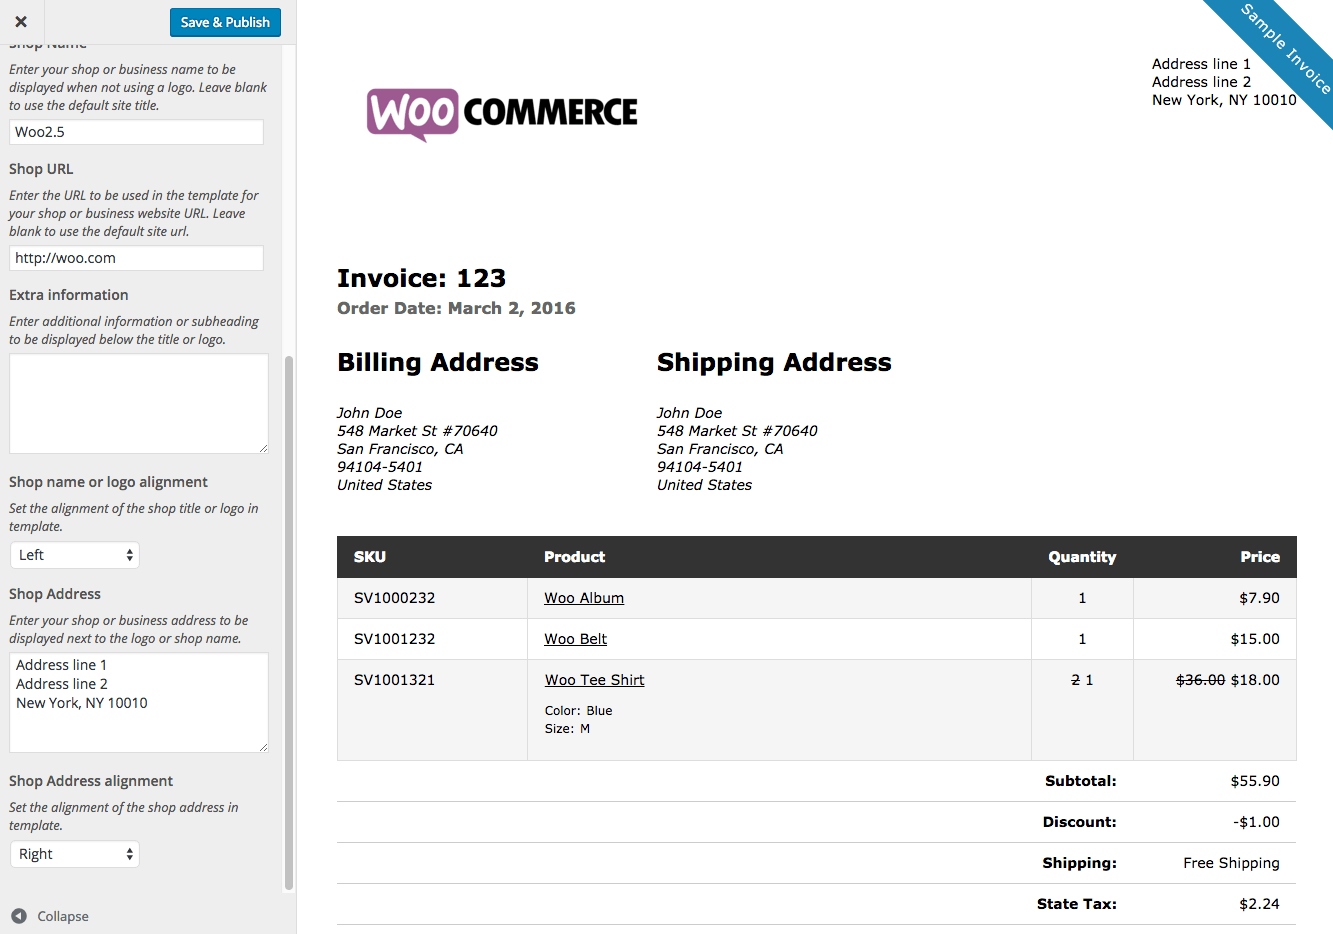 Reliefworkersus  Inspiring Woocommerce Print Invoices Amp Packing Lists  Woocommerce Docs With Marvelous Woocommerce Print Invoices  Packing Lists Customizer With Delightful Sample Invoice Terms And Conditions Also Proforma Invoice Generator In Addition Invoice Credit Note And Programs For Invoices As Well As Definition Of Purchase Invoice Additionally Sample Of Commercial Invoice From Docswoocommercecom With Reliefworkersus  Marvelous Woocommerce Print Invoices Amp Packing Lists  Woocommerce Docs With Delightful Woocommerce Print Invoices  Packing Lists Customizer And Inspiring Sample Invoice Terms And Conditions Also Proforma Invoice Generator In Addition Invoice Credit Note From Docswoocommercecom